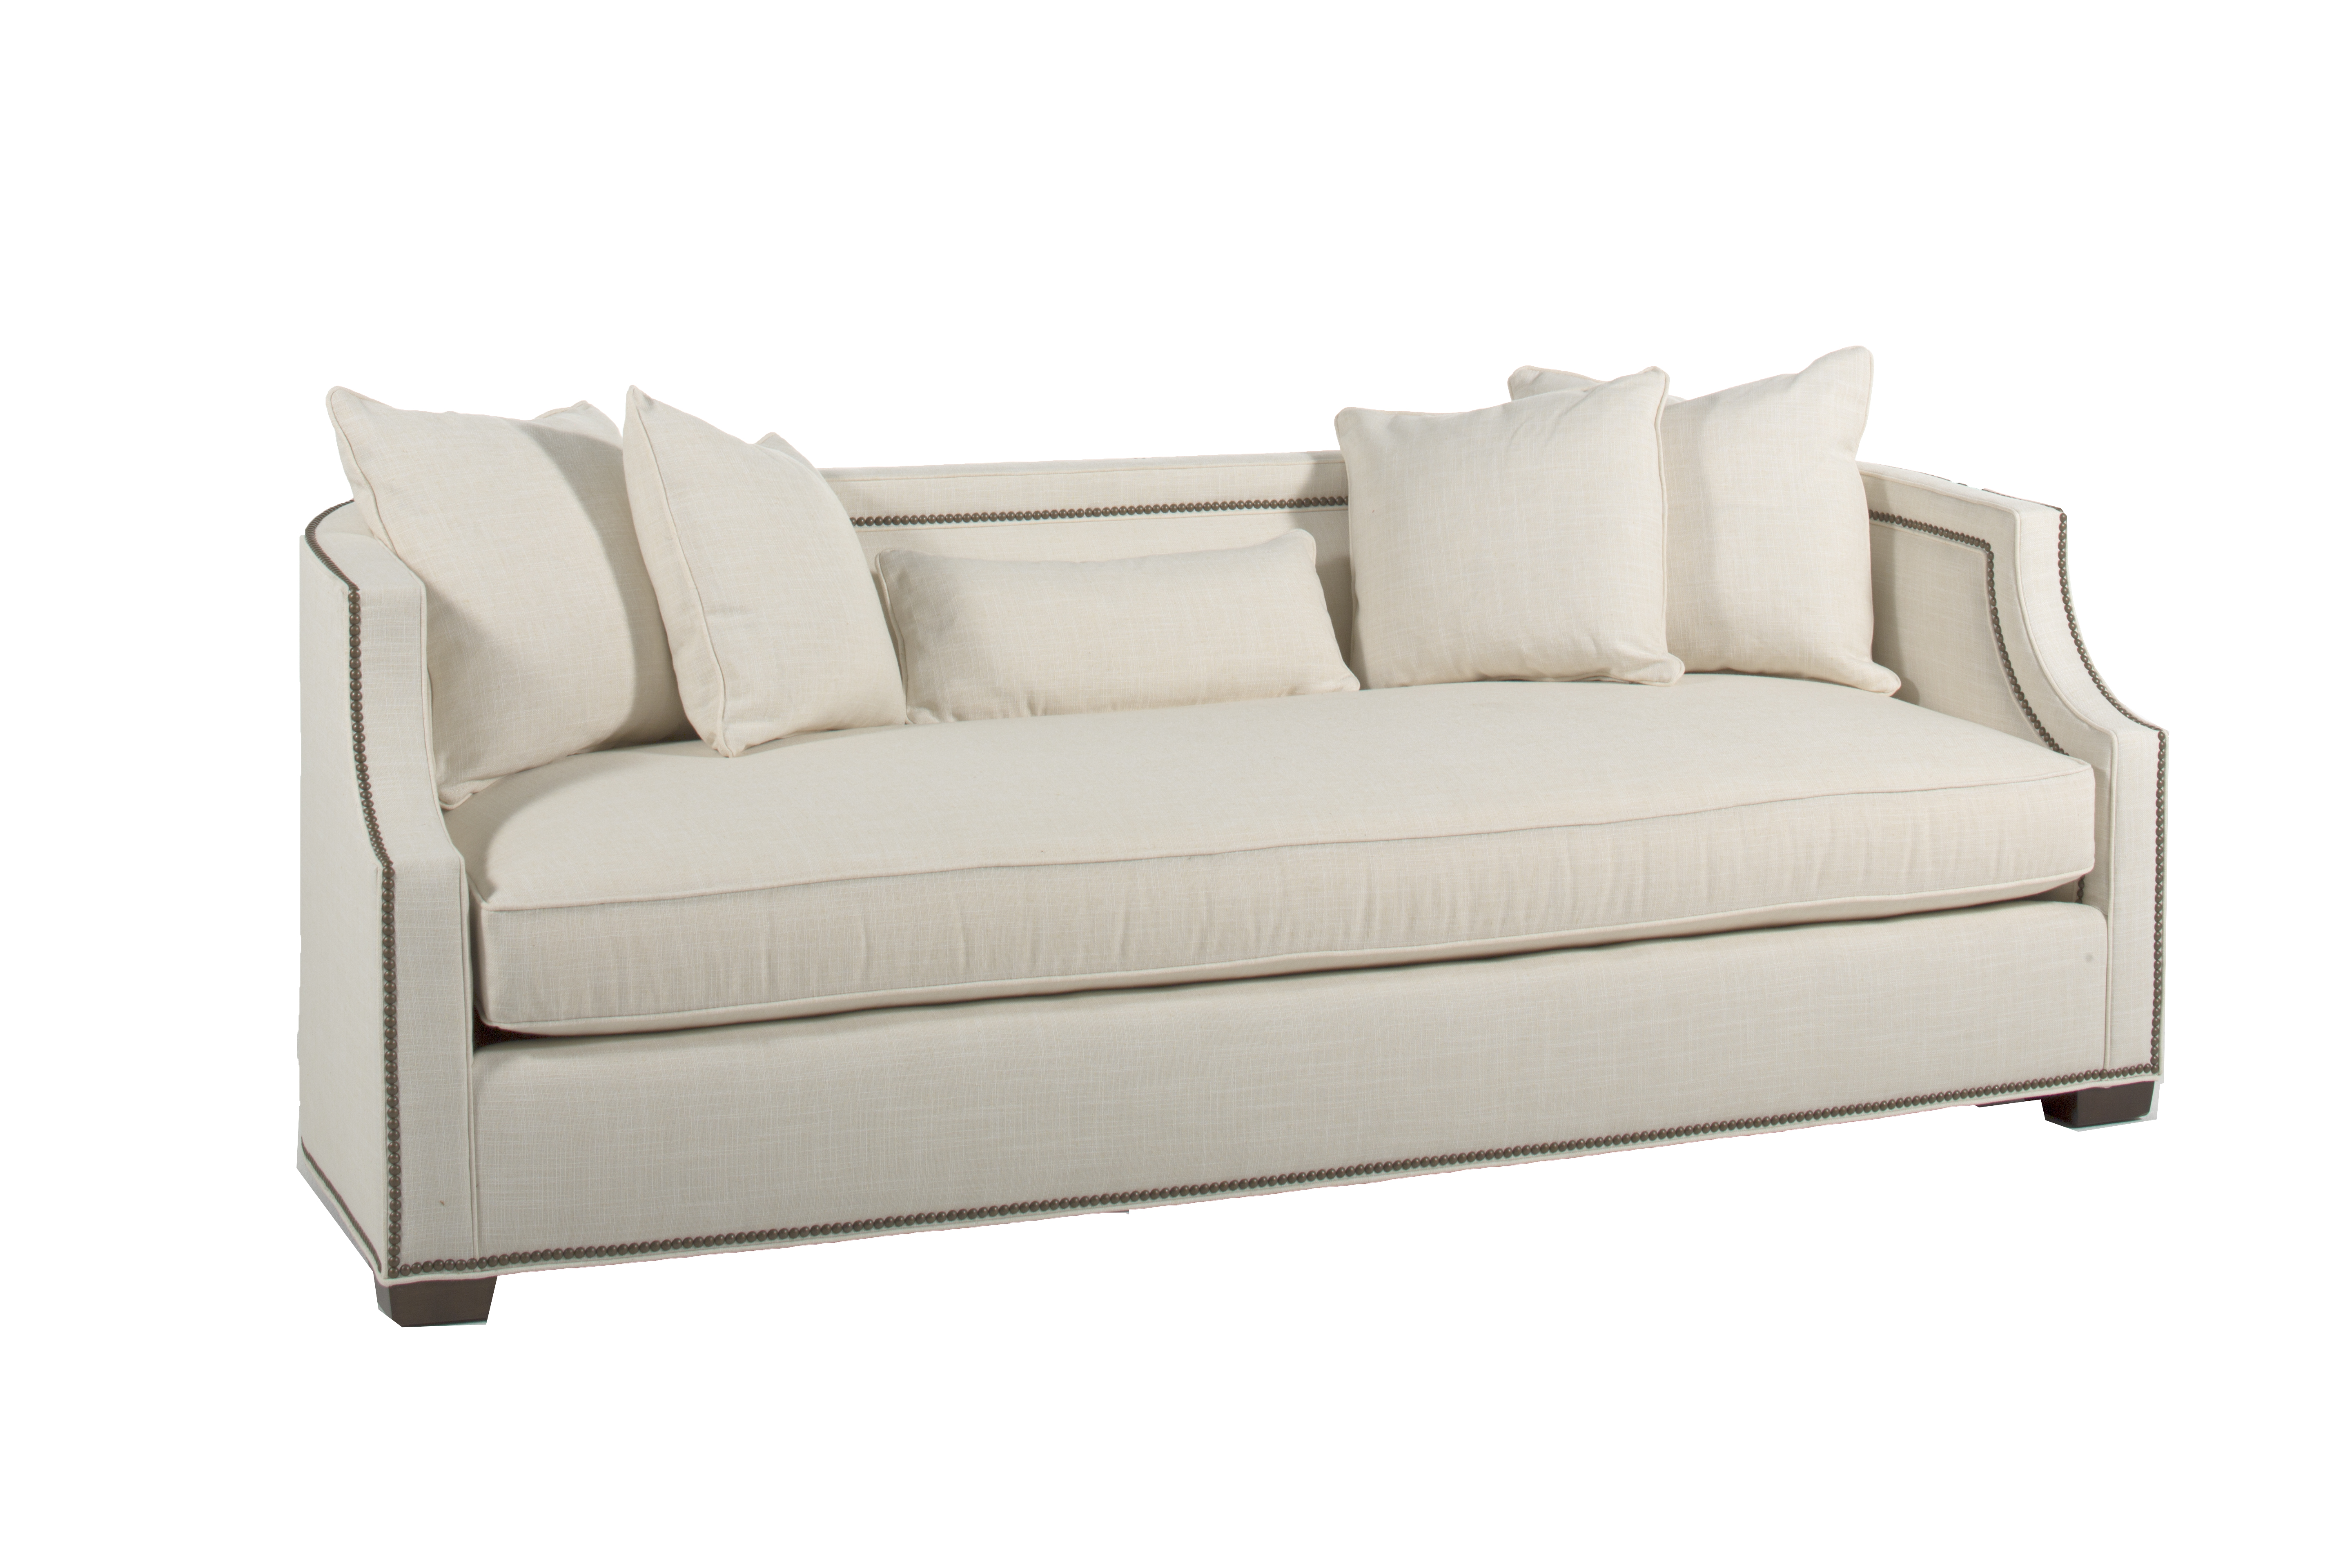 Beau Willow Sofa